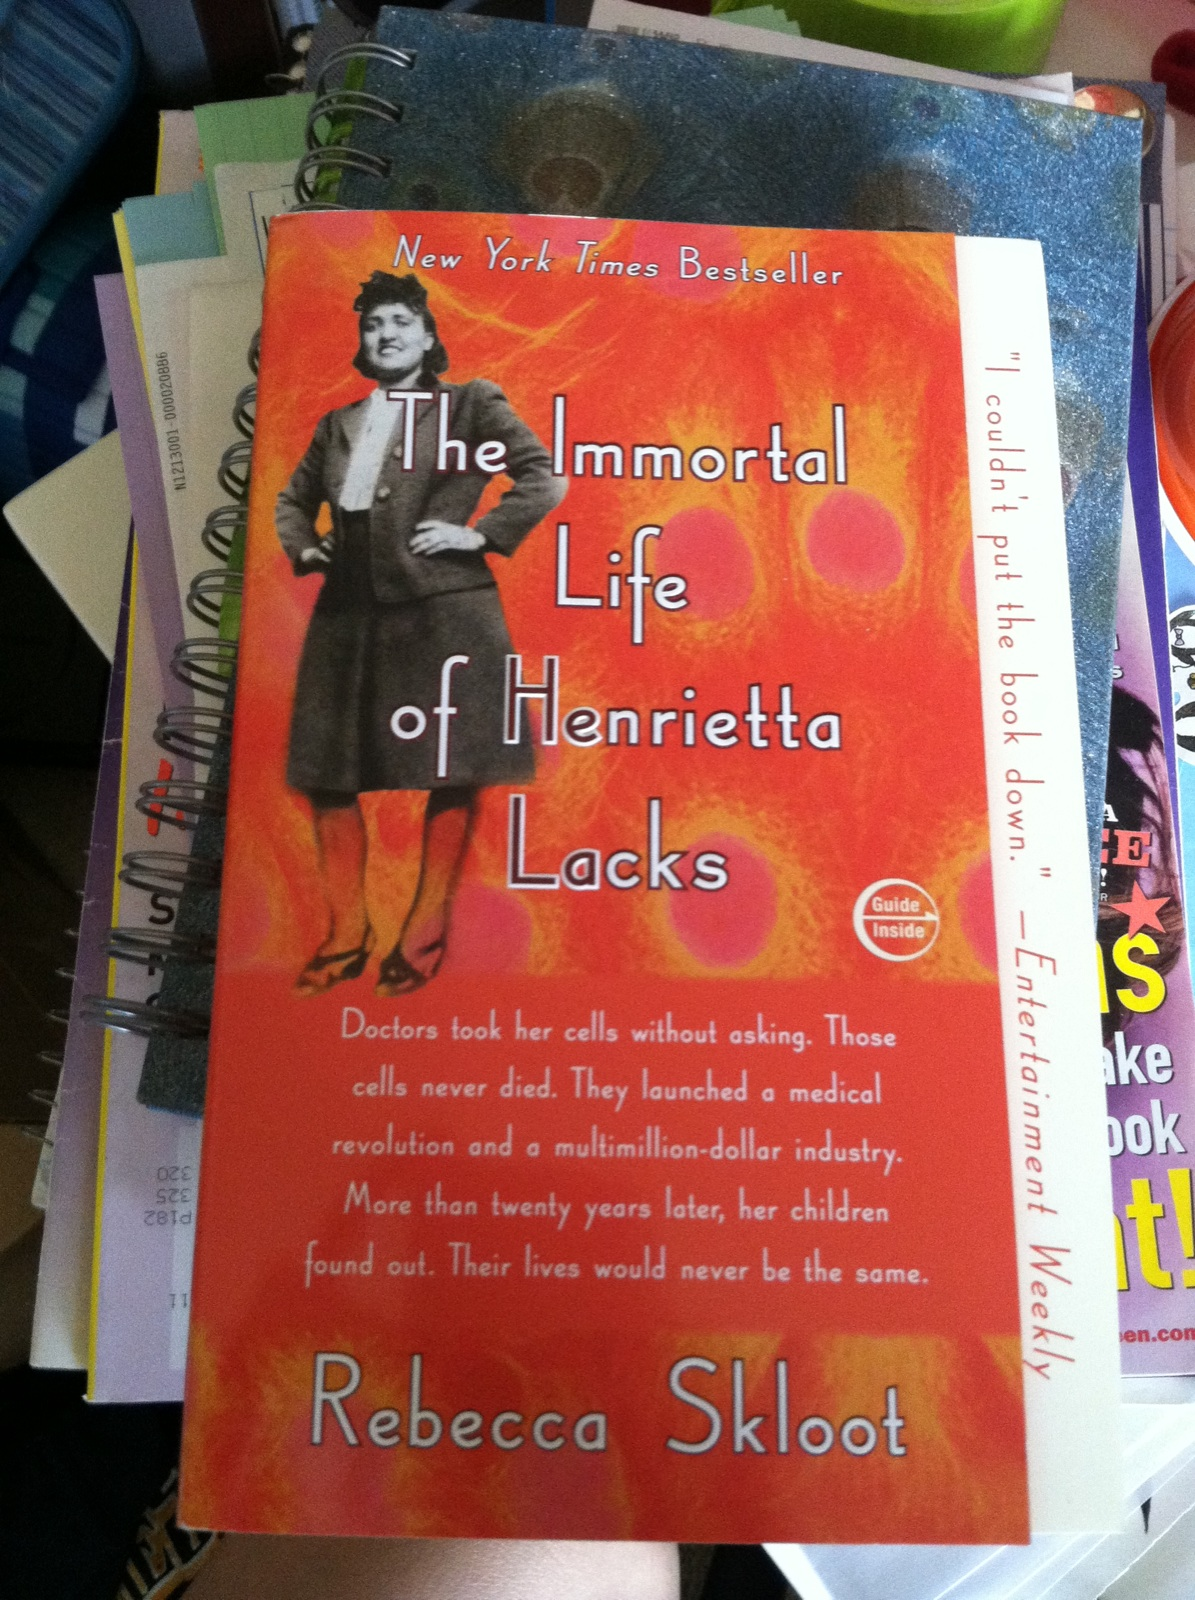 an overview of the immortal life of henrietta lacks by rebecca skloot The immortal life of henrietta lacks (2010) is a non-fiction book by american author rebecca sklootit was the 2011 winner of the national academies communication award for best creative work that helps the public understanding of topics in science, engineering or medicine.